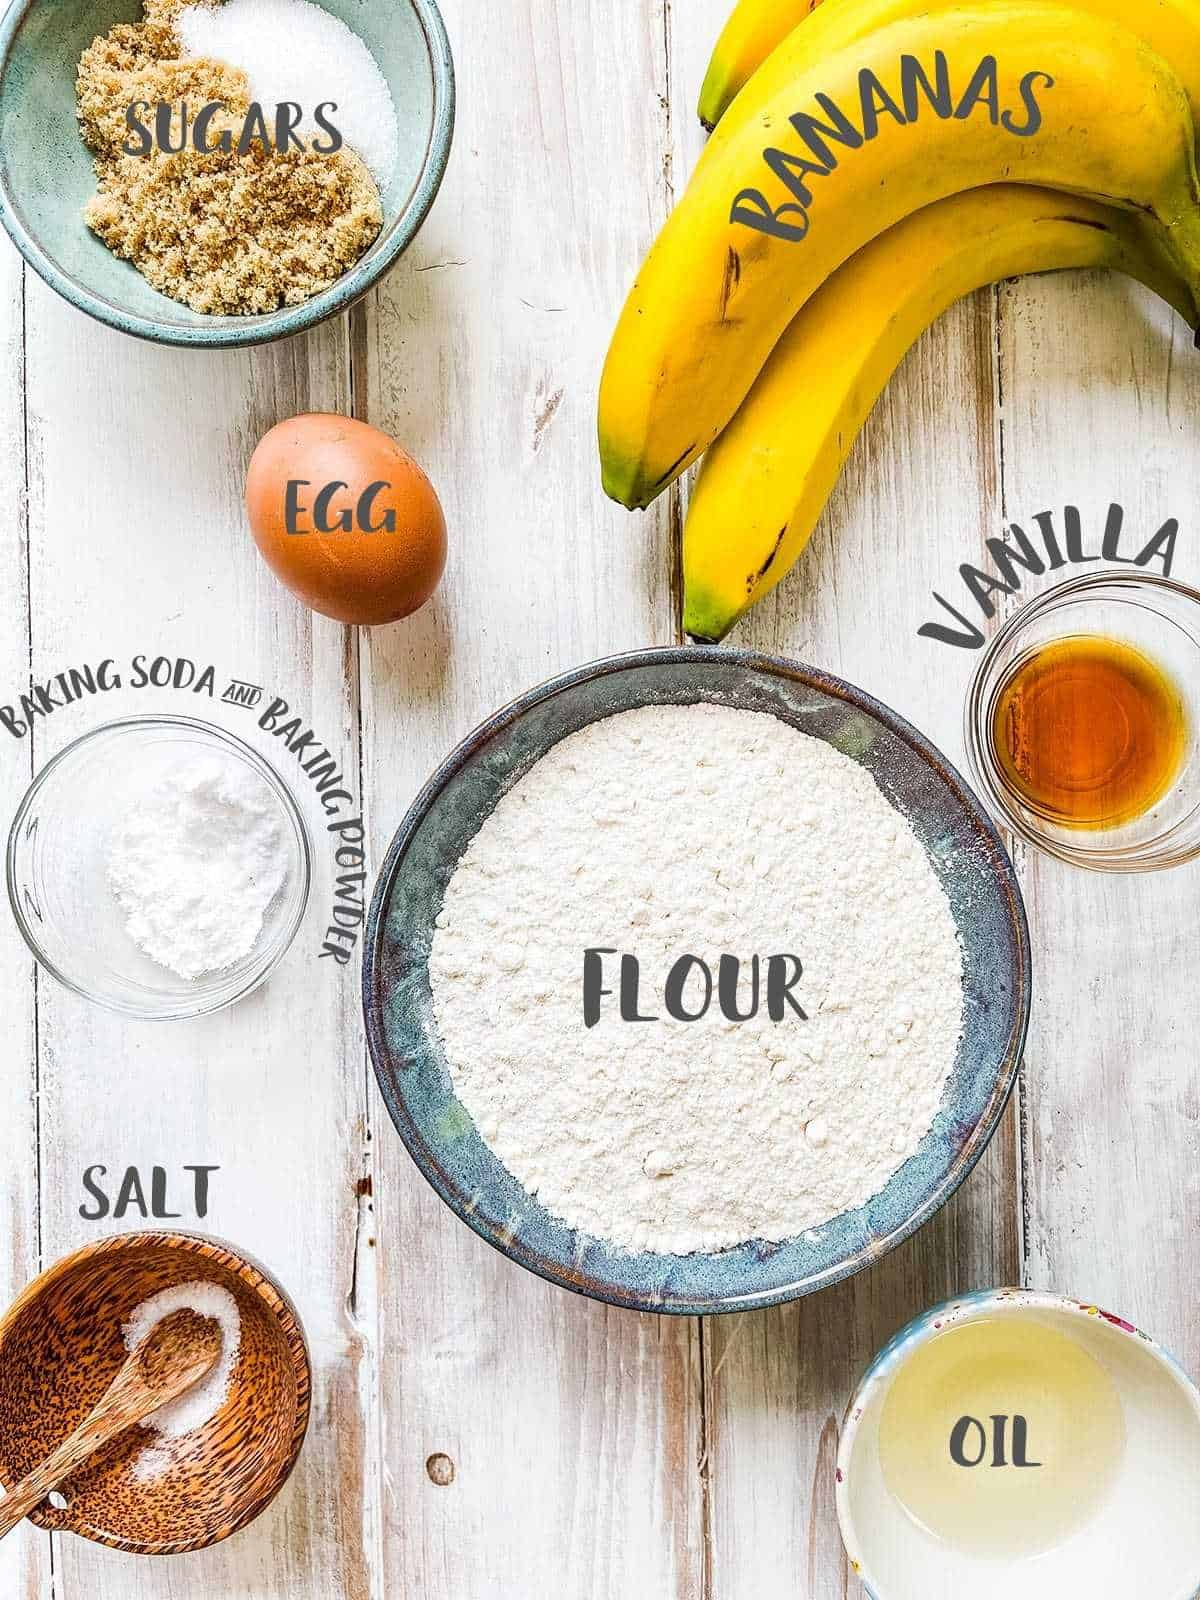 Ingredients for making Banana Bread on a white table with titles.